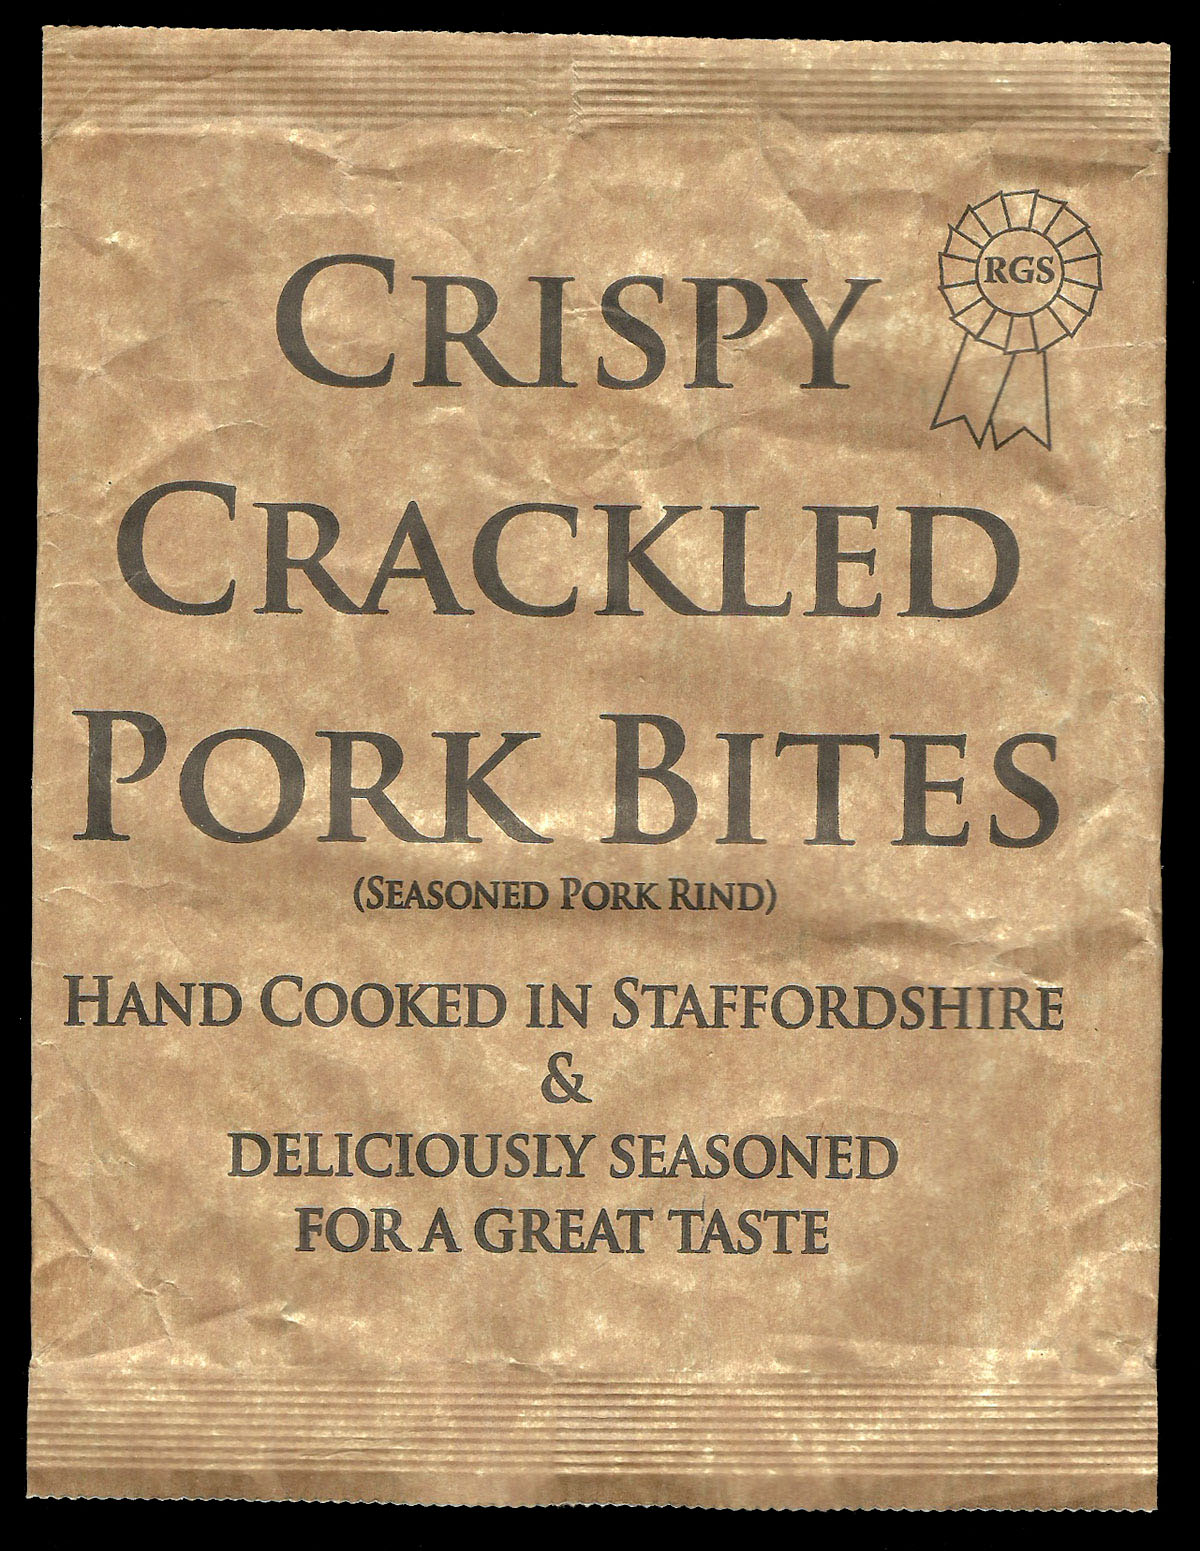 RGS Crispy Crackled Pork Bites Review2 - RGS, Crispy Crackled Pork Bites Review